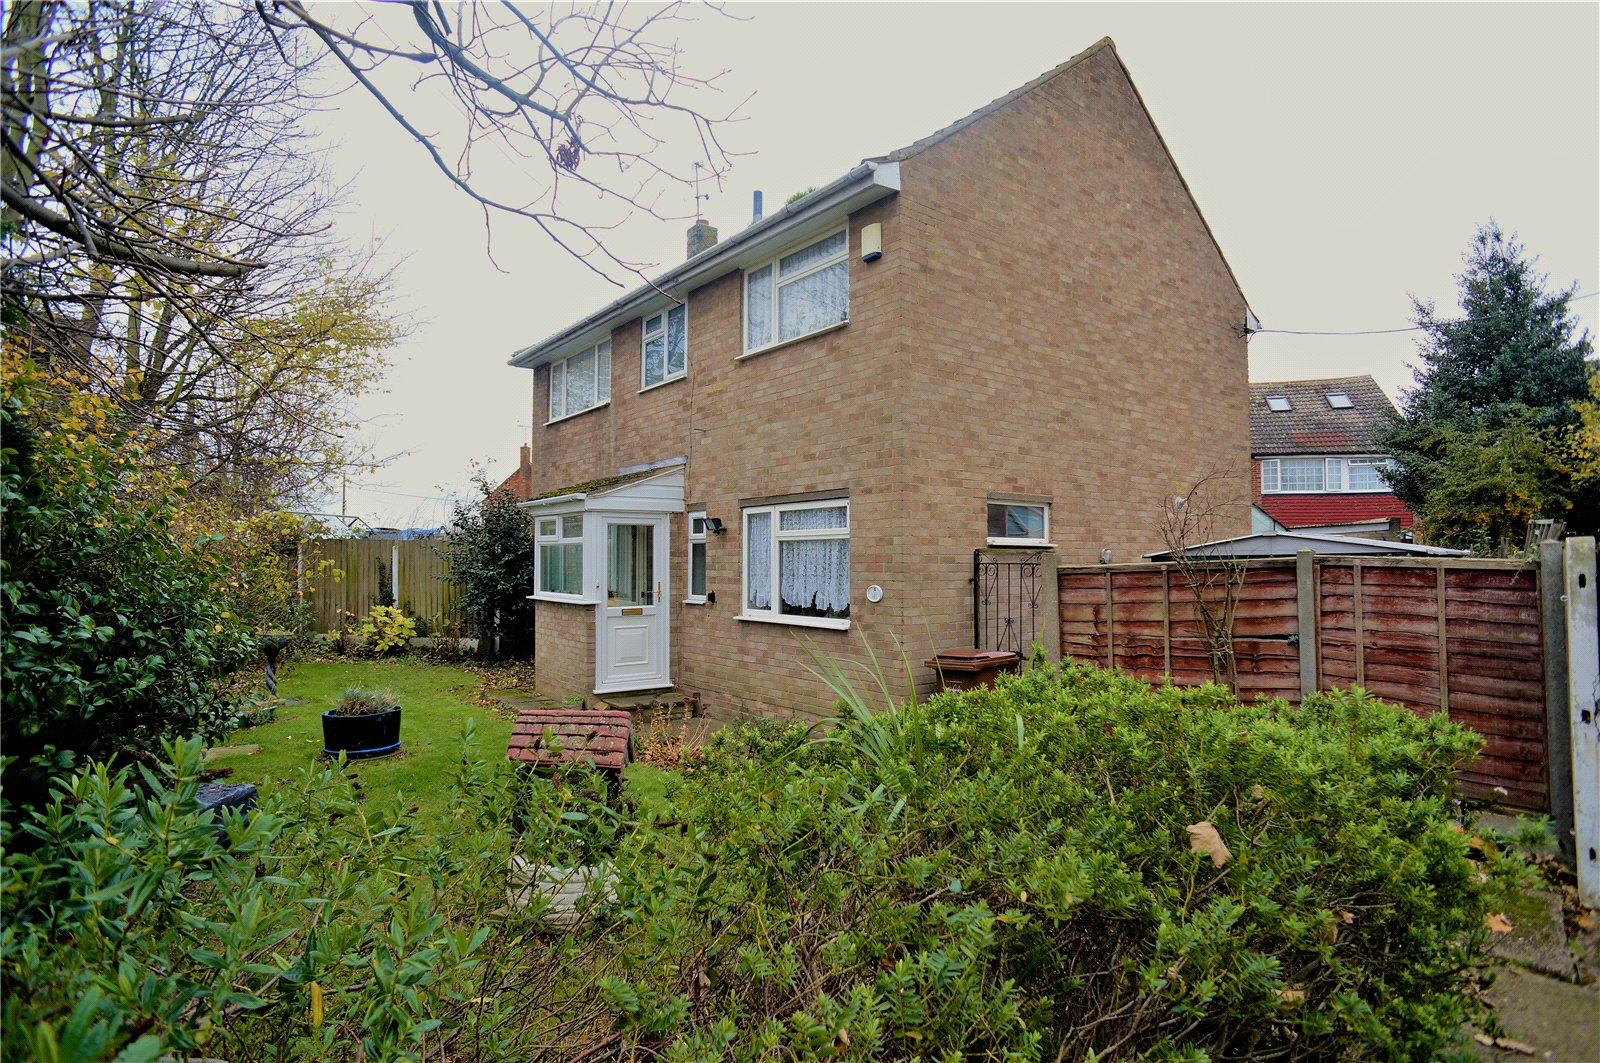 4 Bedrooms Detached House for sale in Vicarage Lane, Hoo, Rochester, Kent, ME3